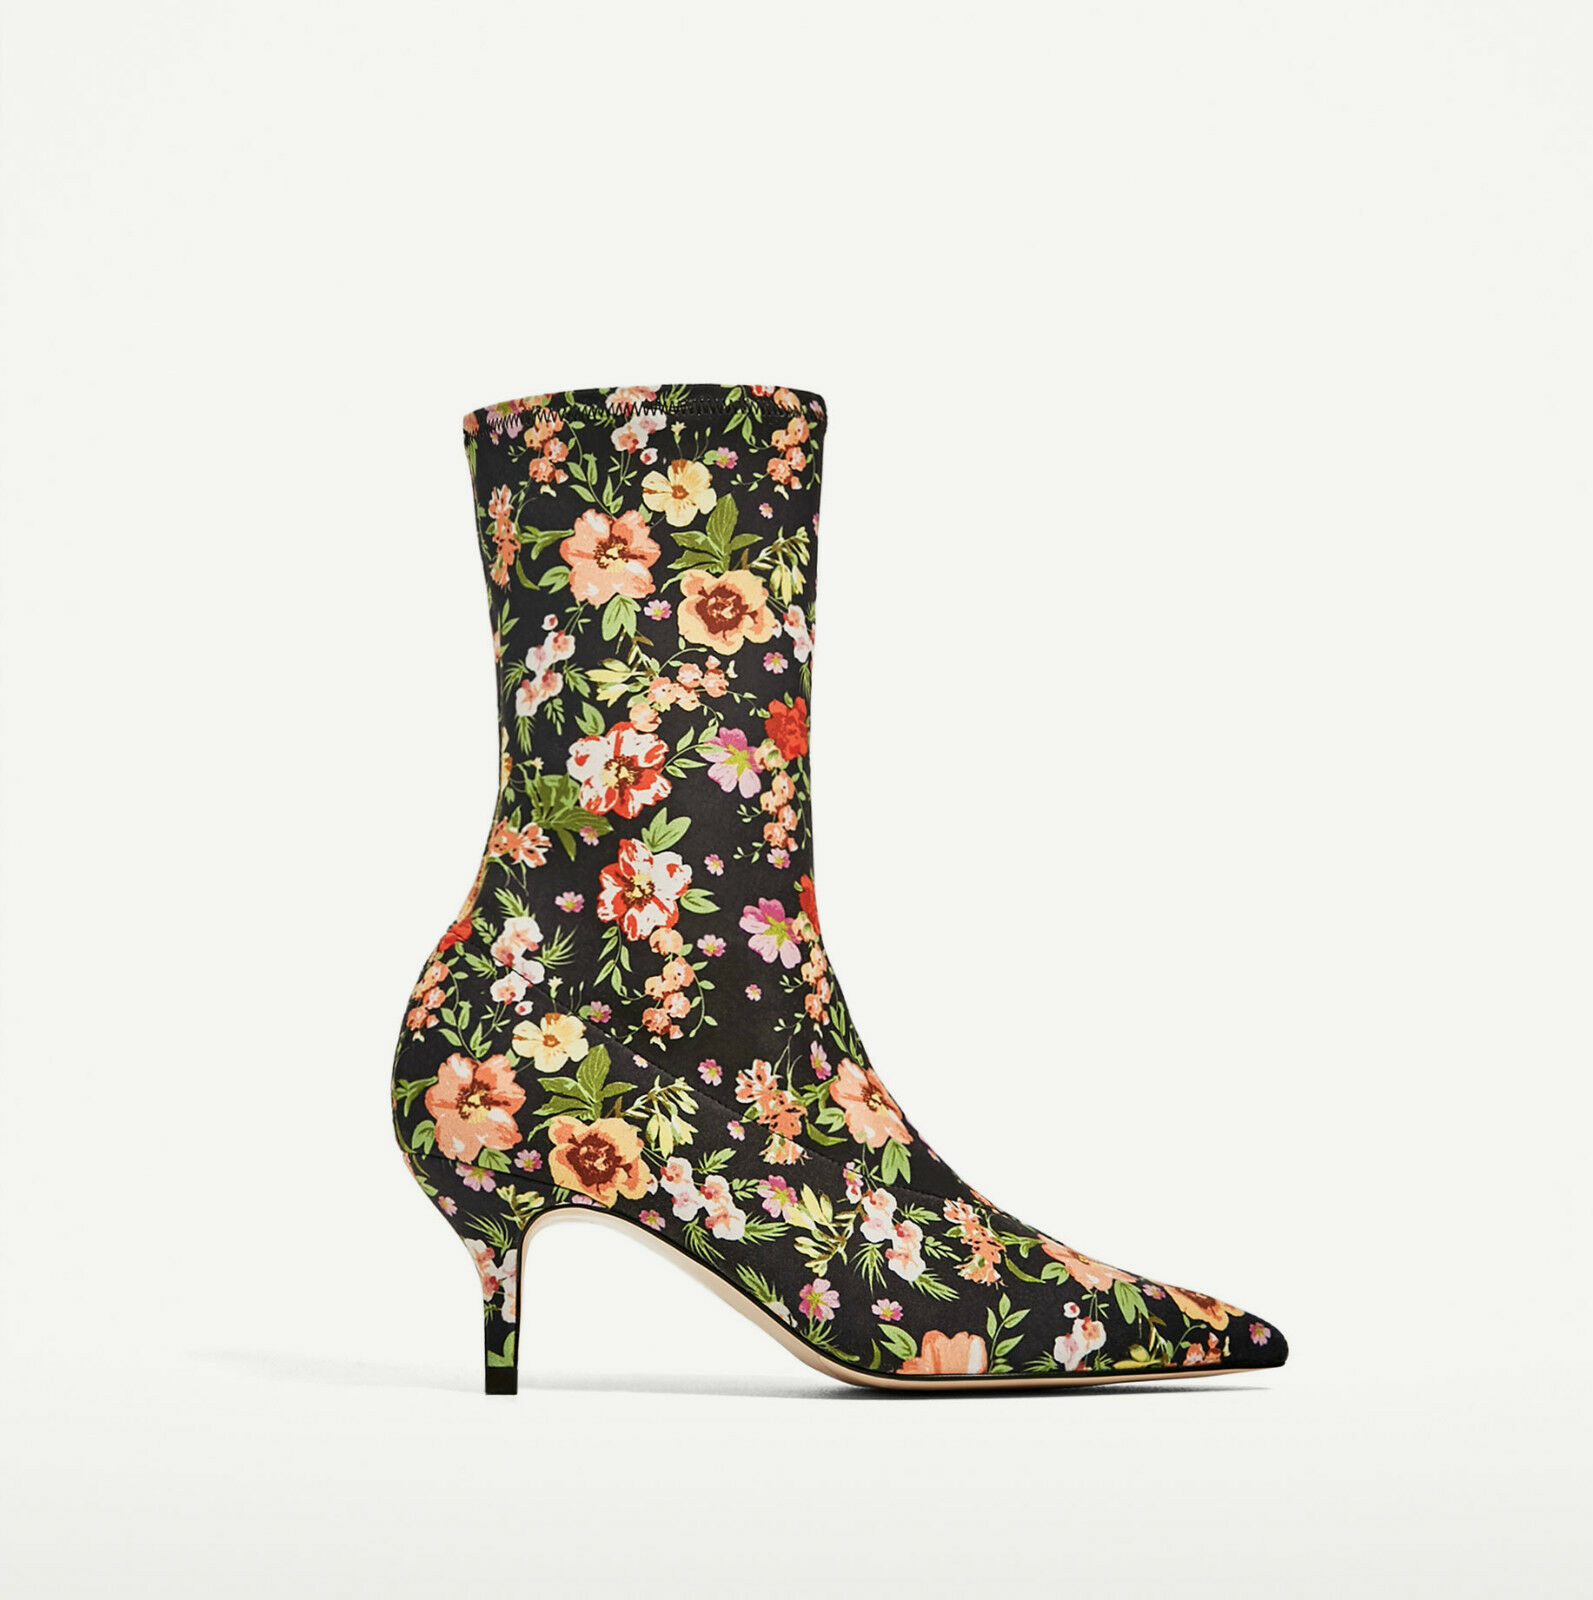 ZARA FLORAL FABRIC HIGH HIGH FABRIC HEEL ANKLE Stiefel SS17 SIZES UK 5, 6 & 7 BNTNW aed989